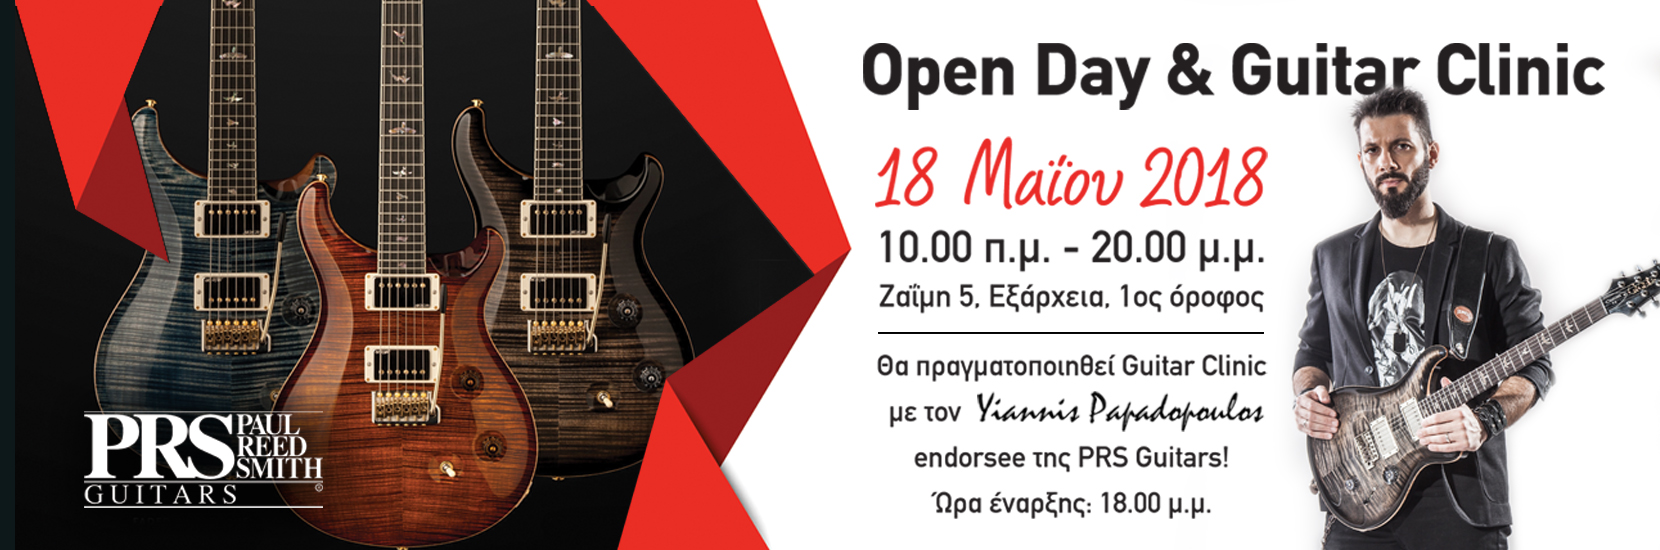 PRS GUITARS OPEN DAY & GUITAR CLINIC